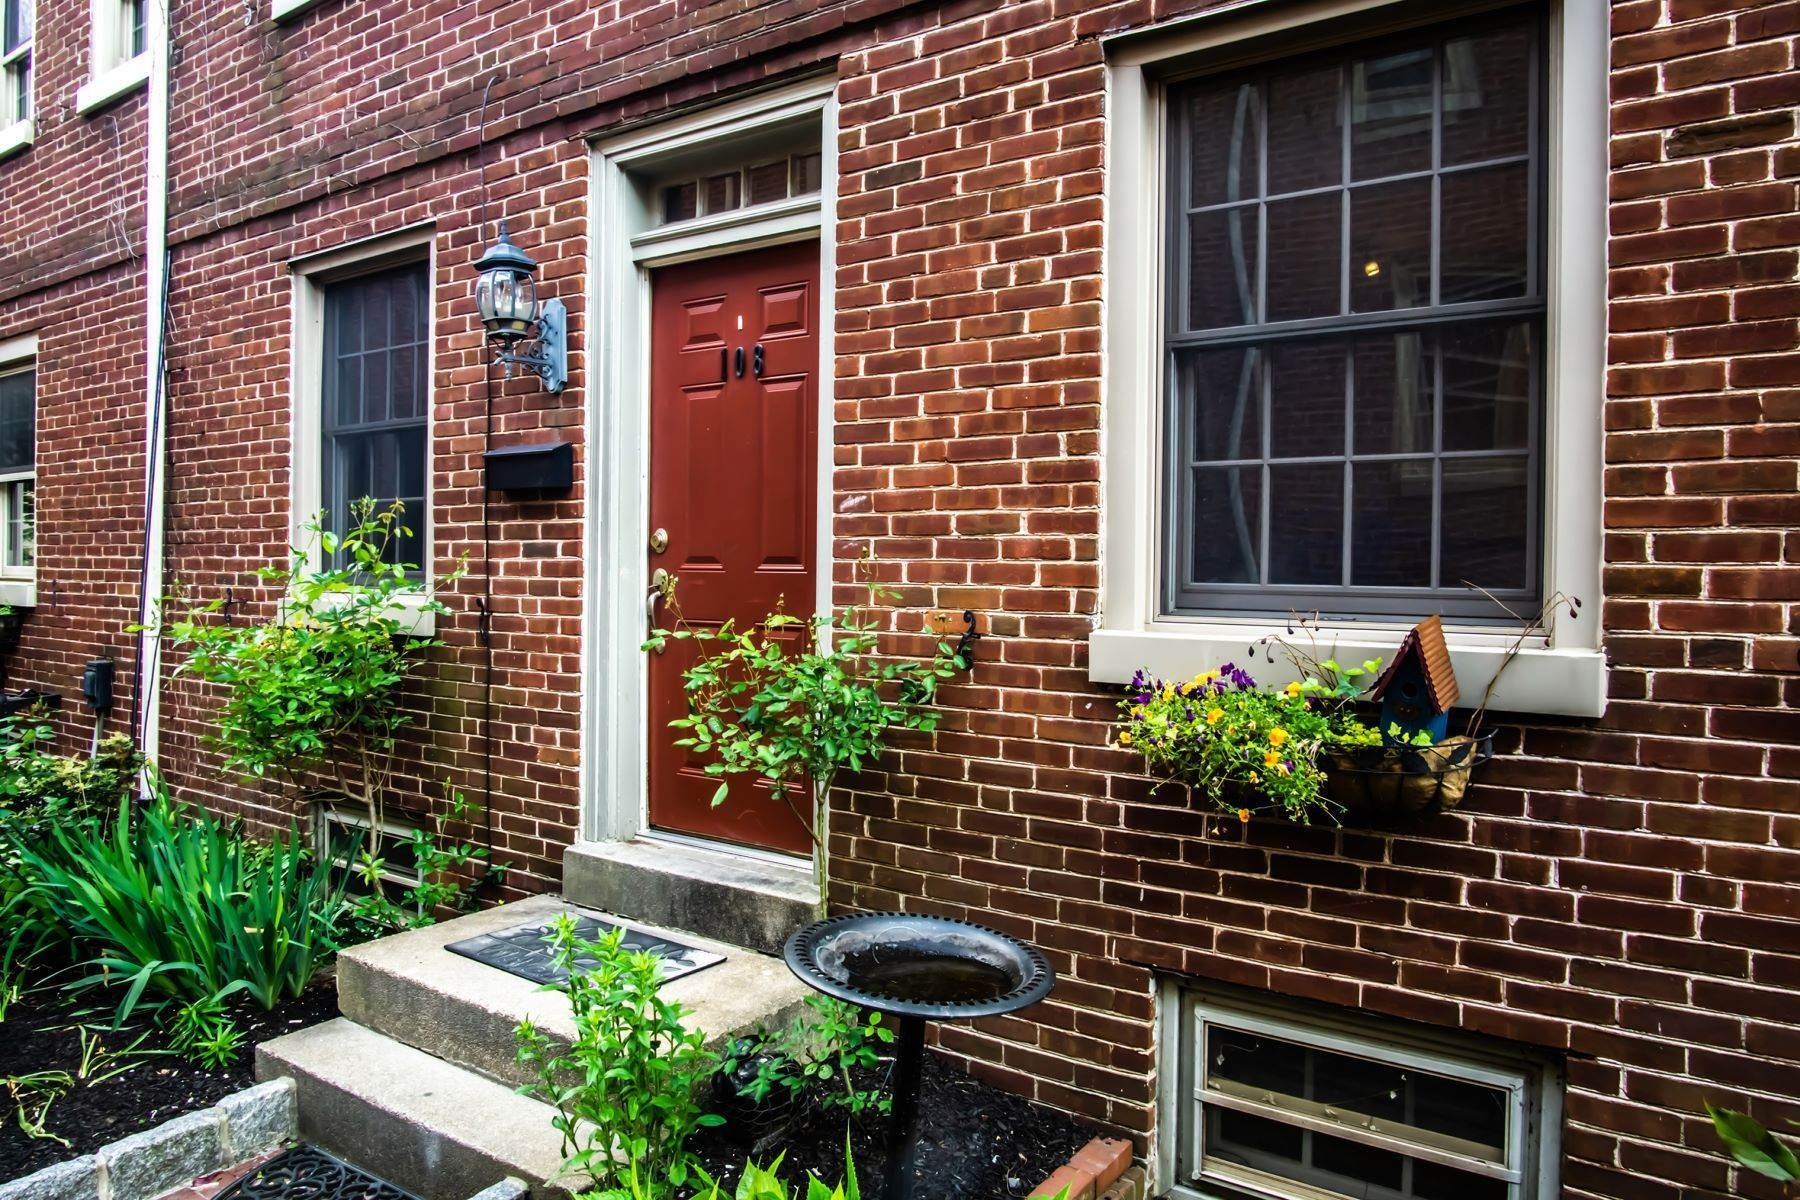 townhouses for Sale at 772 S FRONT ST #108, 108 Philadelphia, Pennsylvania 19147 United States